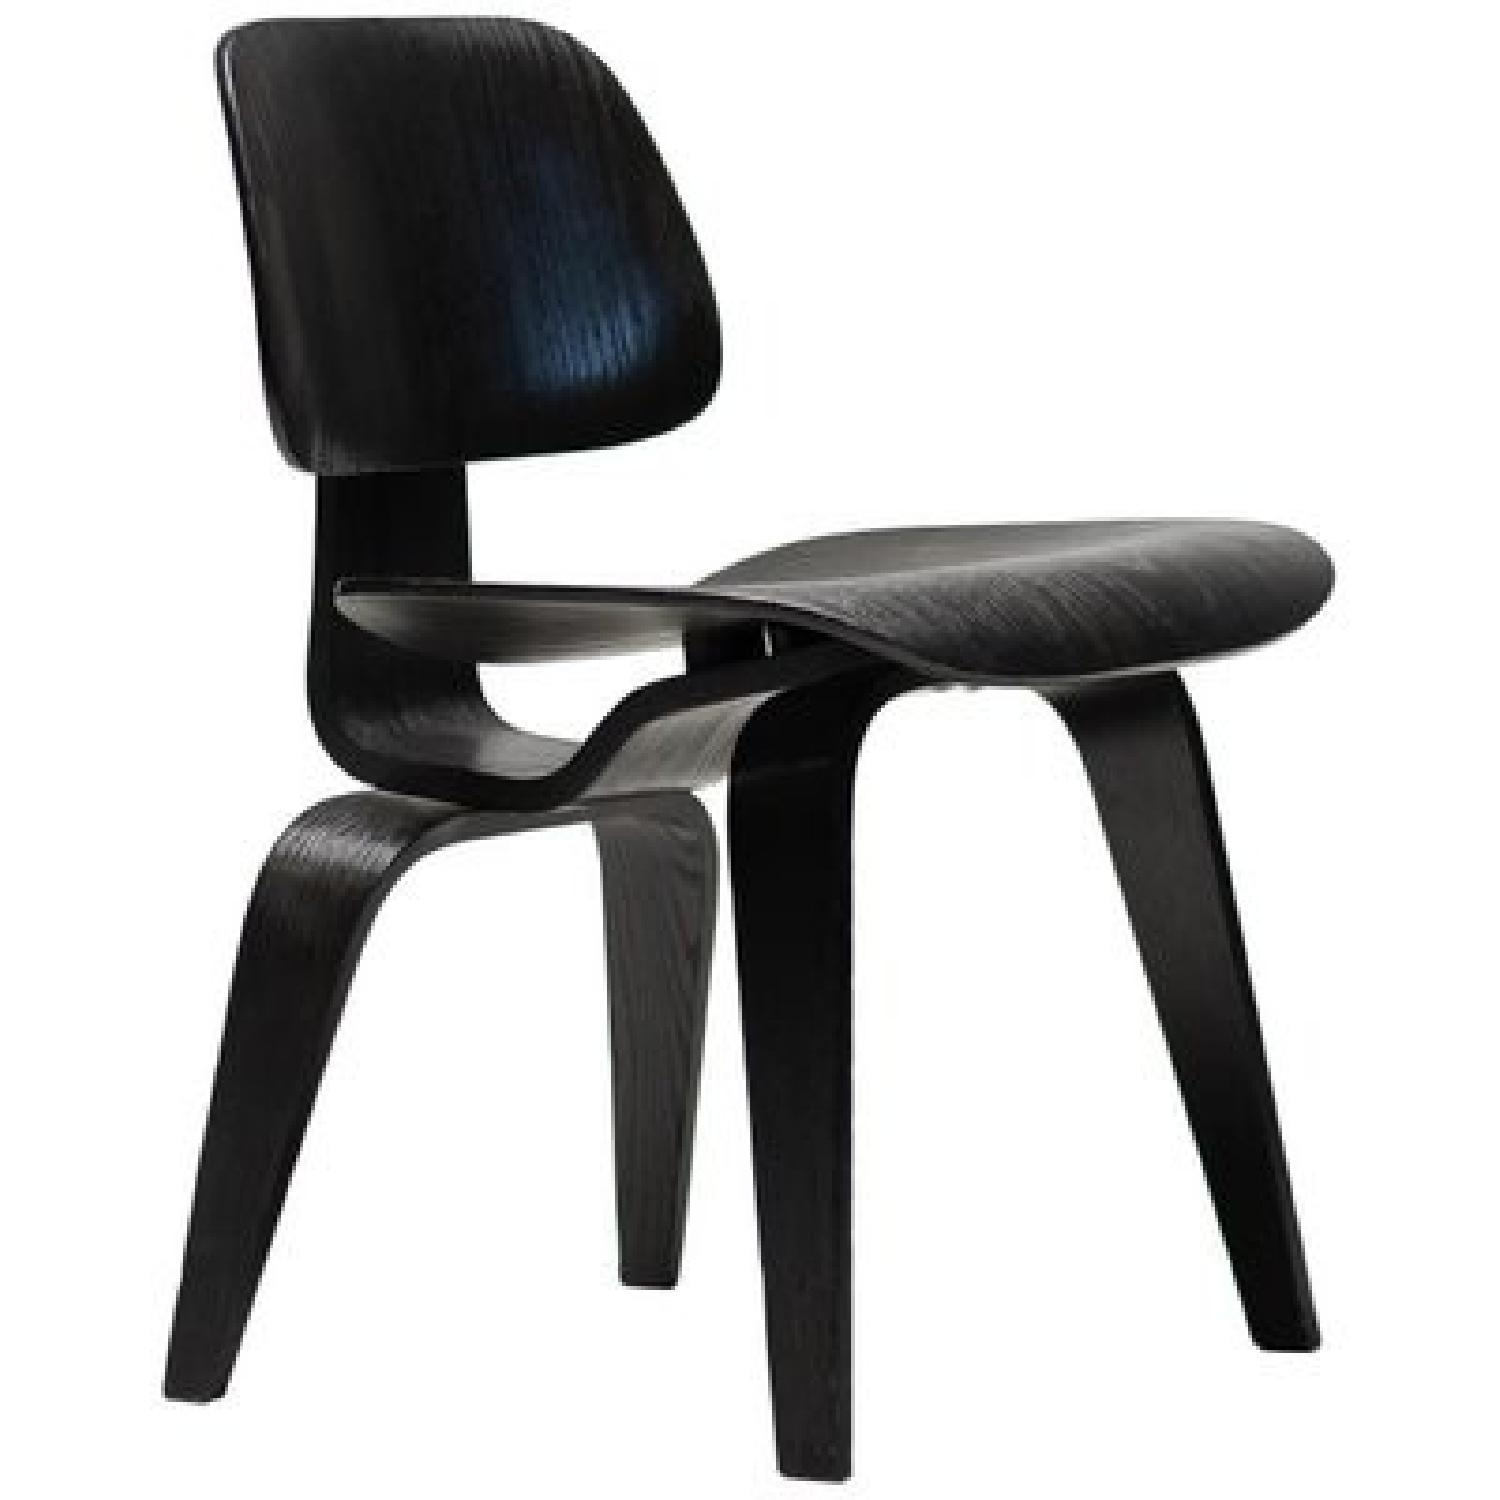 Herman Miller Eames Vintage DCW Chair in Ebony - image-19